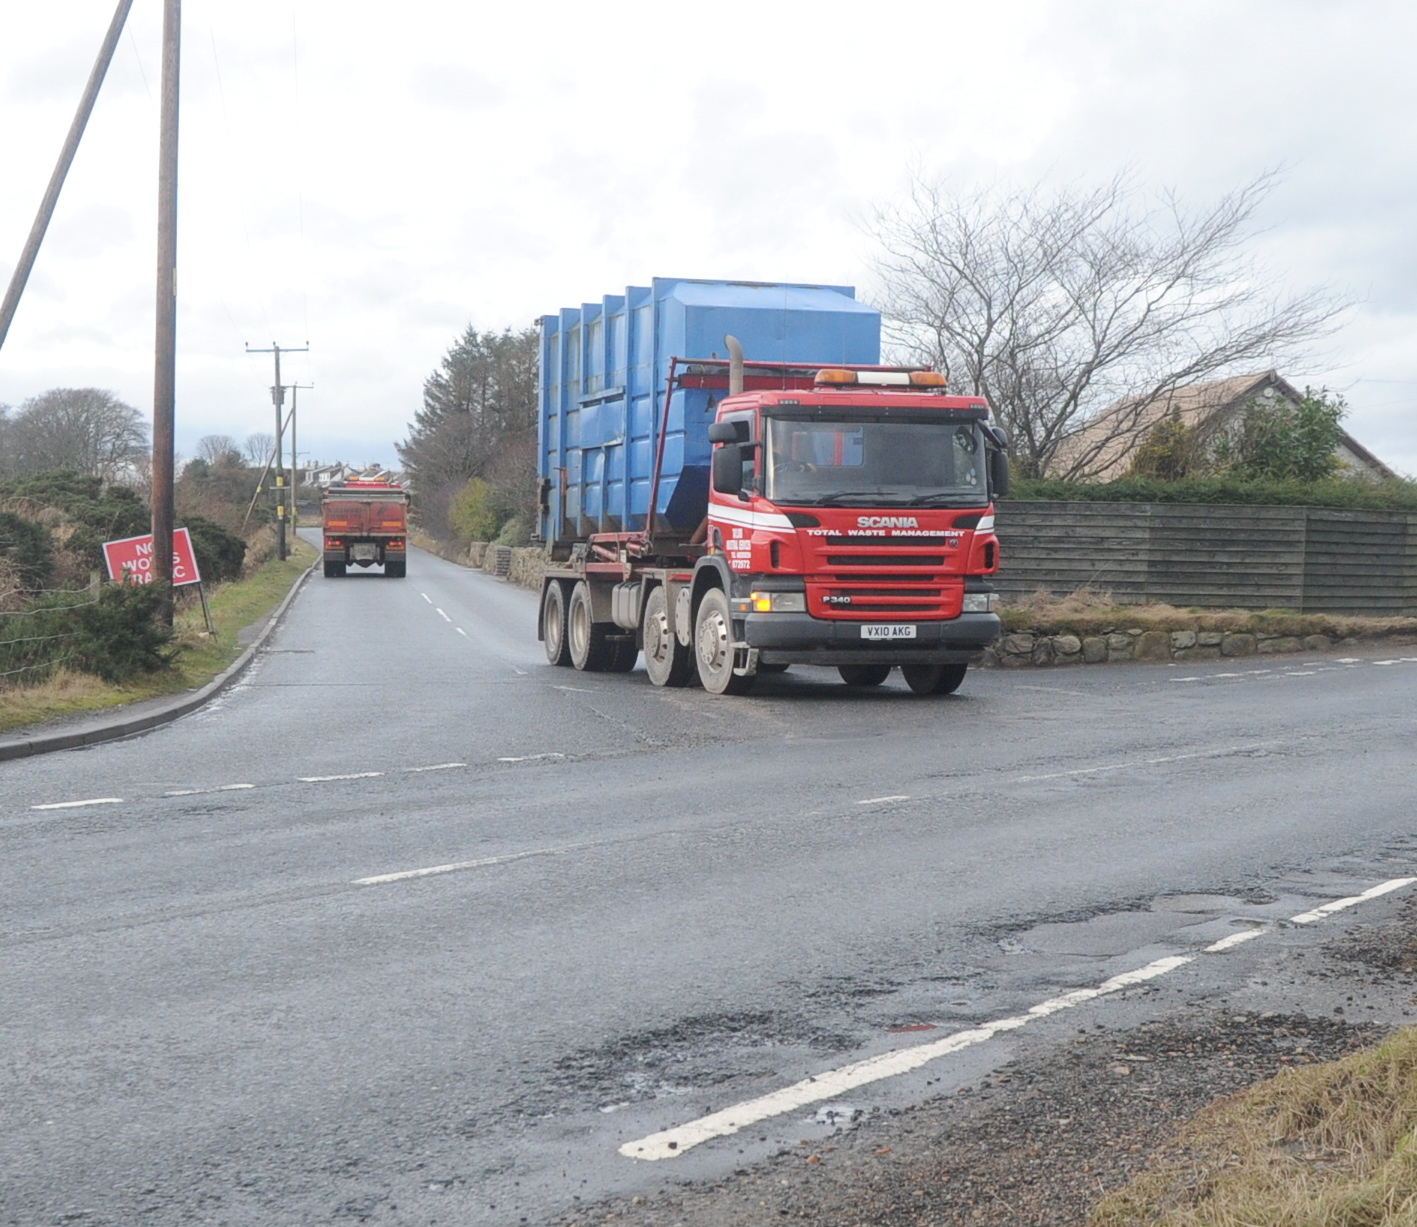 A call has been made to ban HGVs on certain roads.